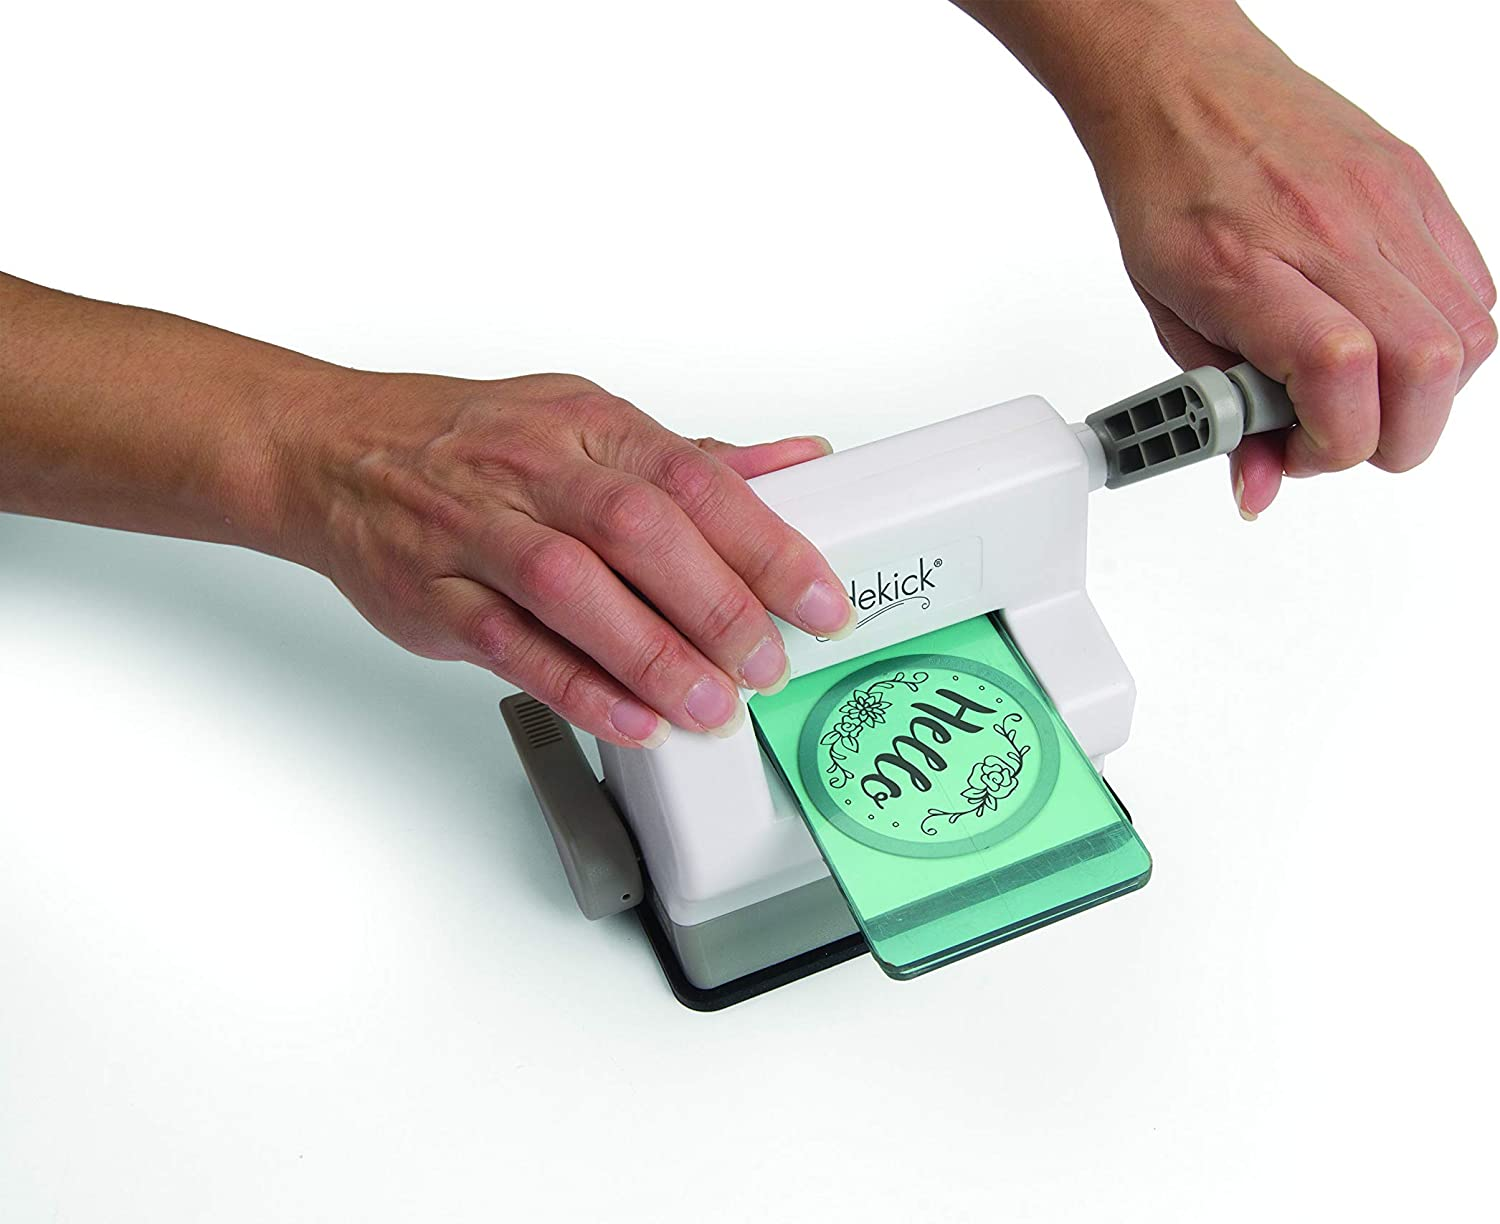 Sizzix Sidekick Die Cutting & Embossing Machine - A super cheap manual machine that comes with a lot of extras